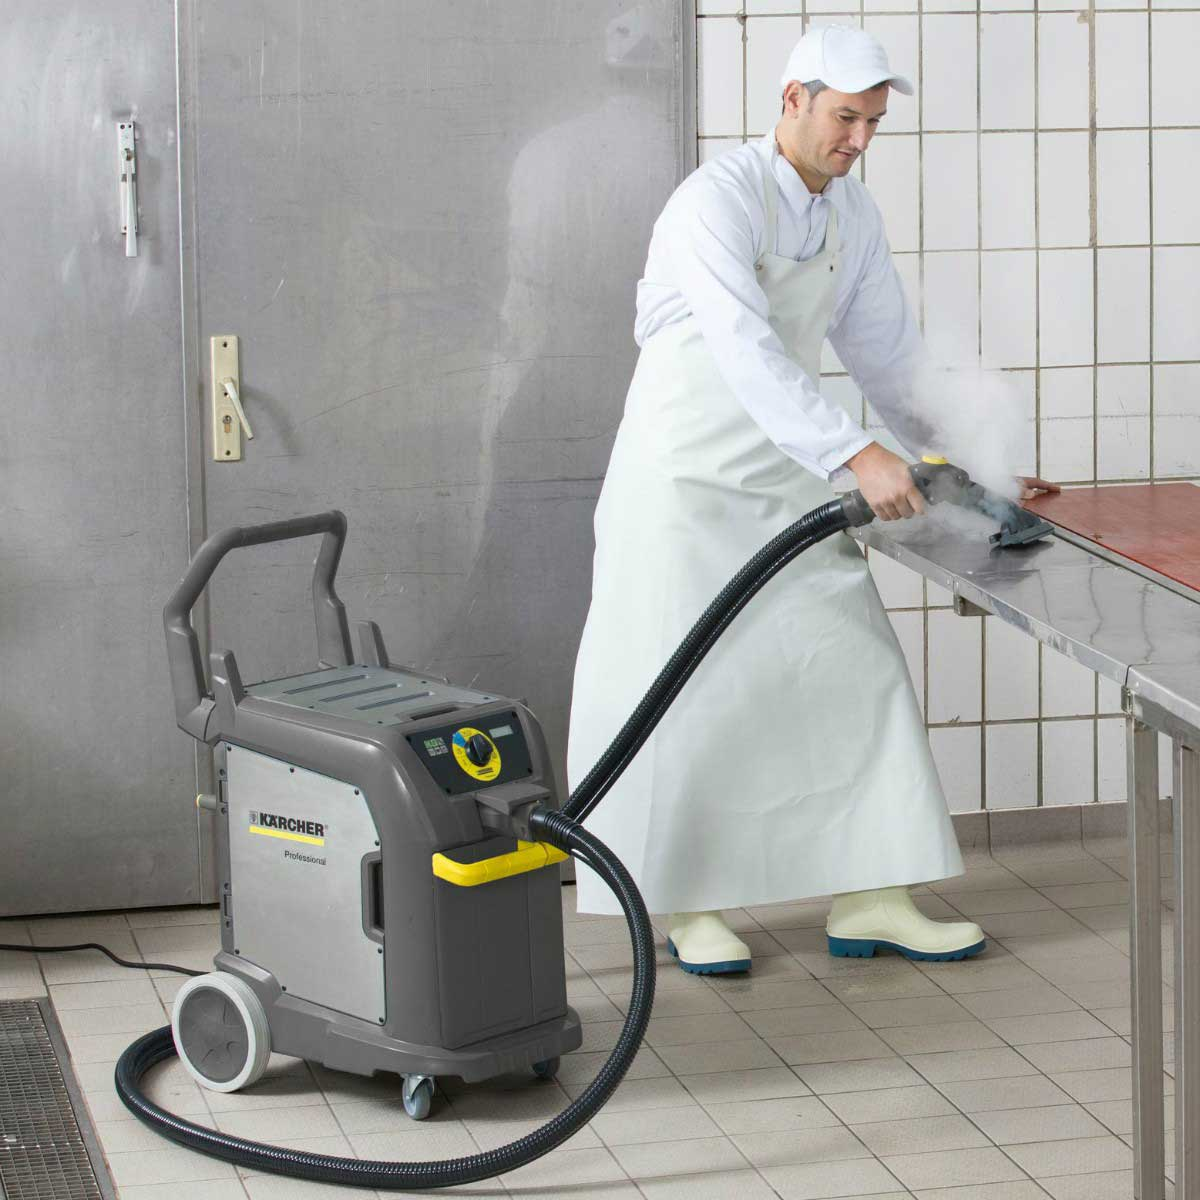 Steam Cleaners For Hygiene In Kitchens Amp Hospitals Clean